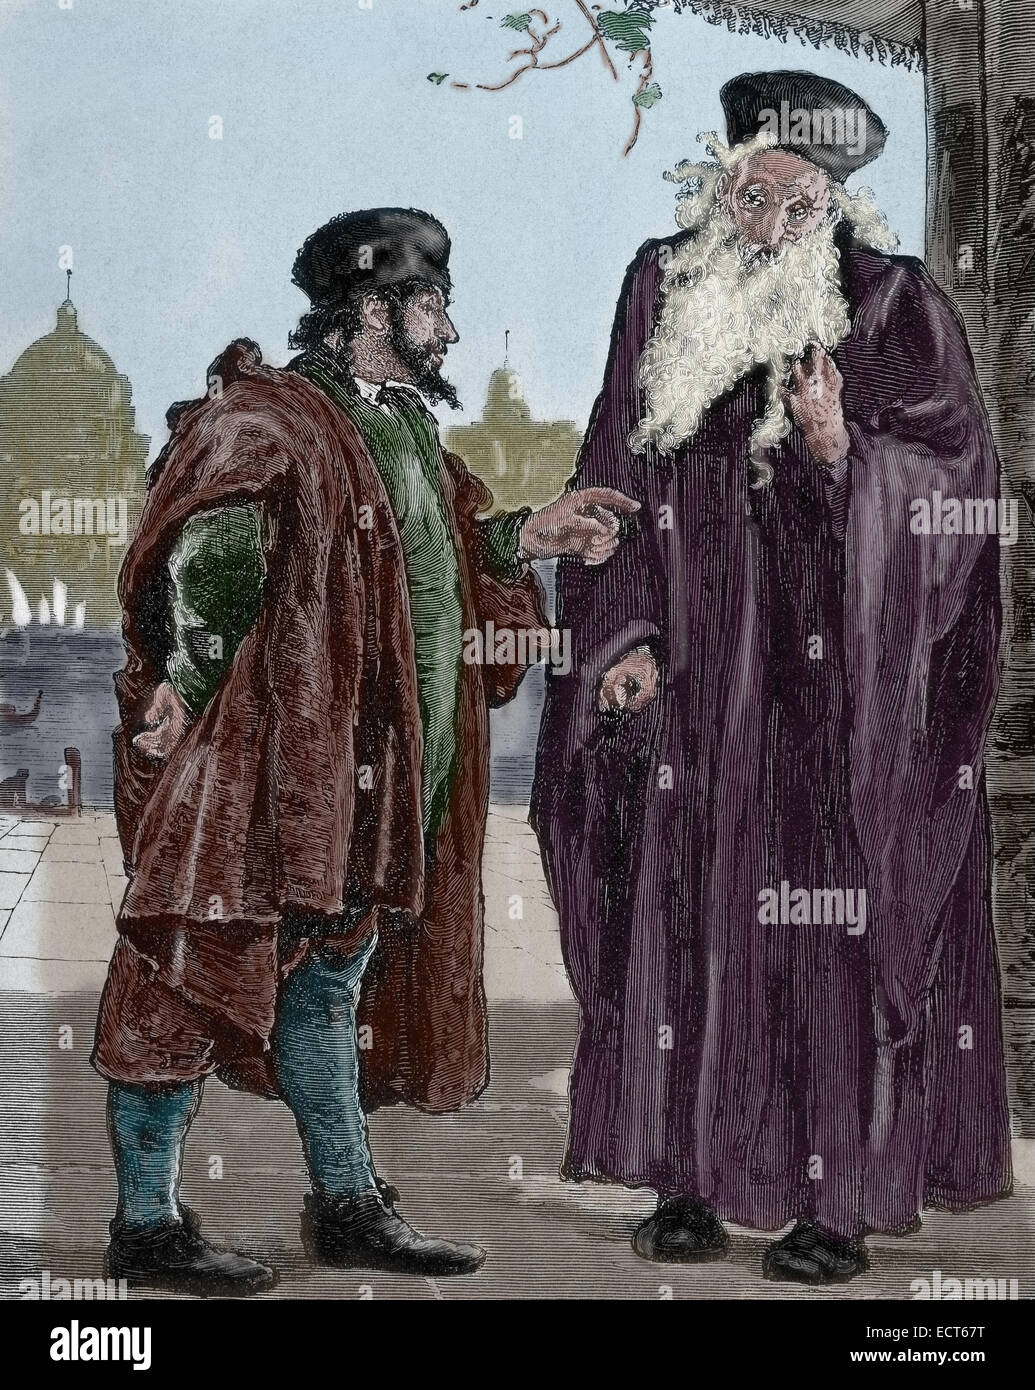 character analysis shylockes in shakespeares the merchant of venice Character analysis shylock - a jewish moneylender in venice angered by his mistreatment at the hands of venice's christians, particularly antonio, shylock schemes to eke out his revenge by ruthlessly demanding as.